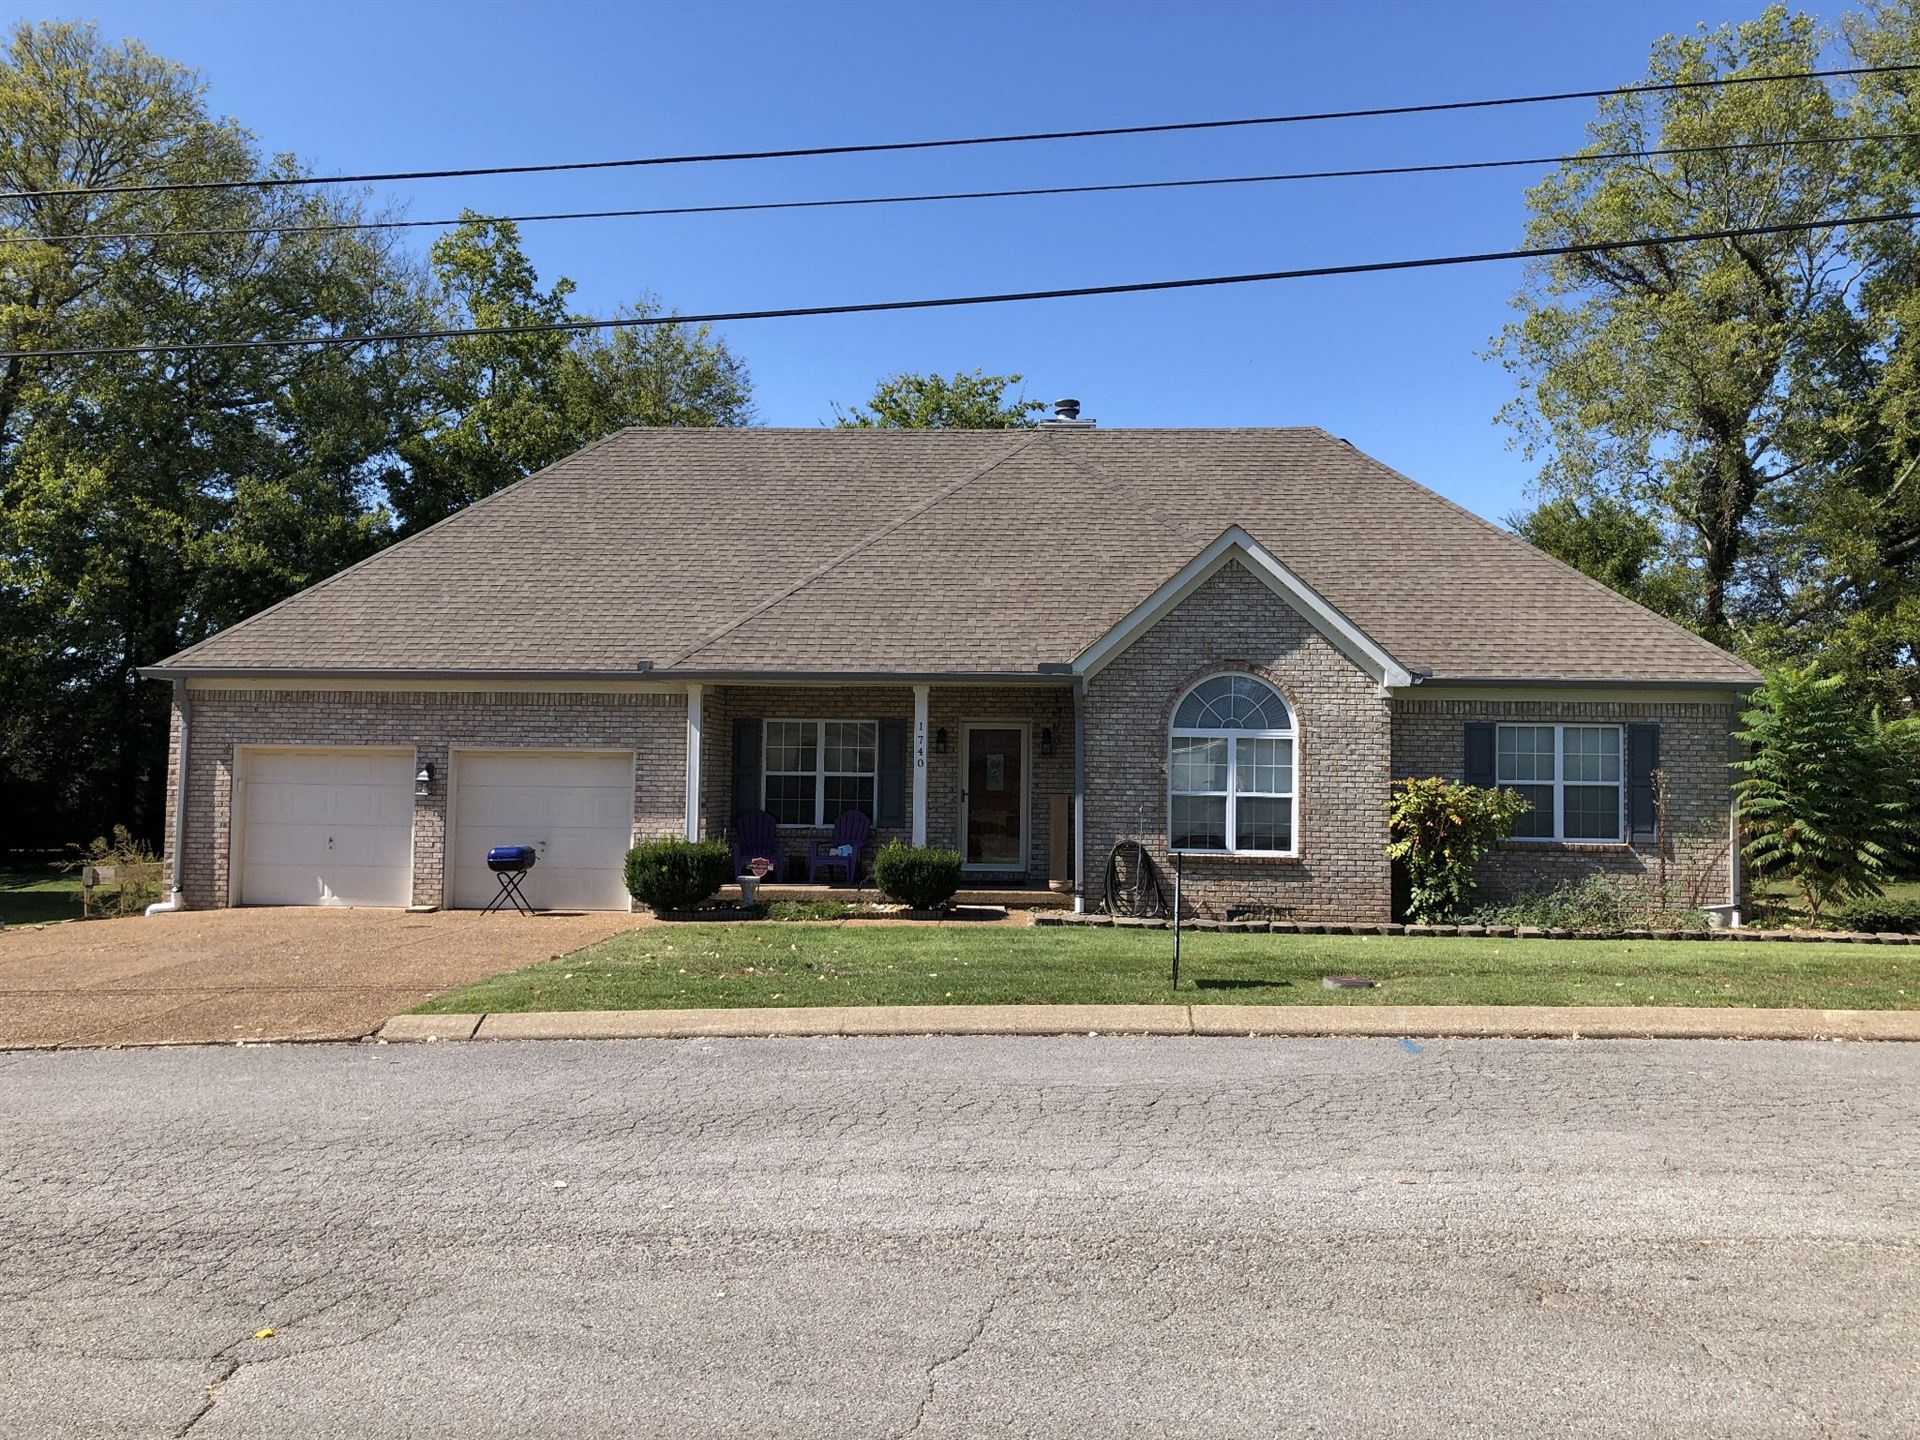 1740 University Dr, Columbia, TN 38401 - MLS#: 2196090